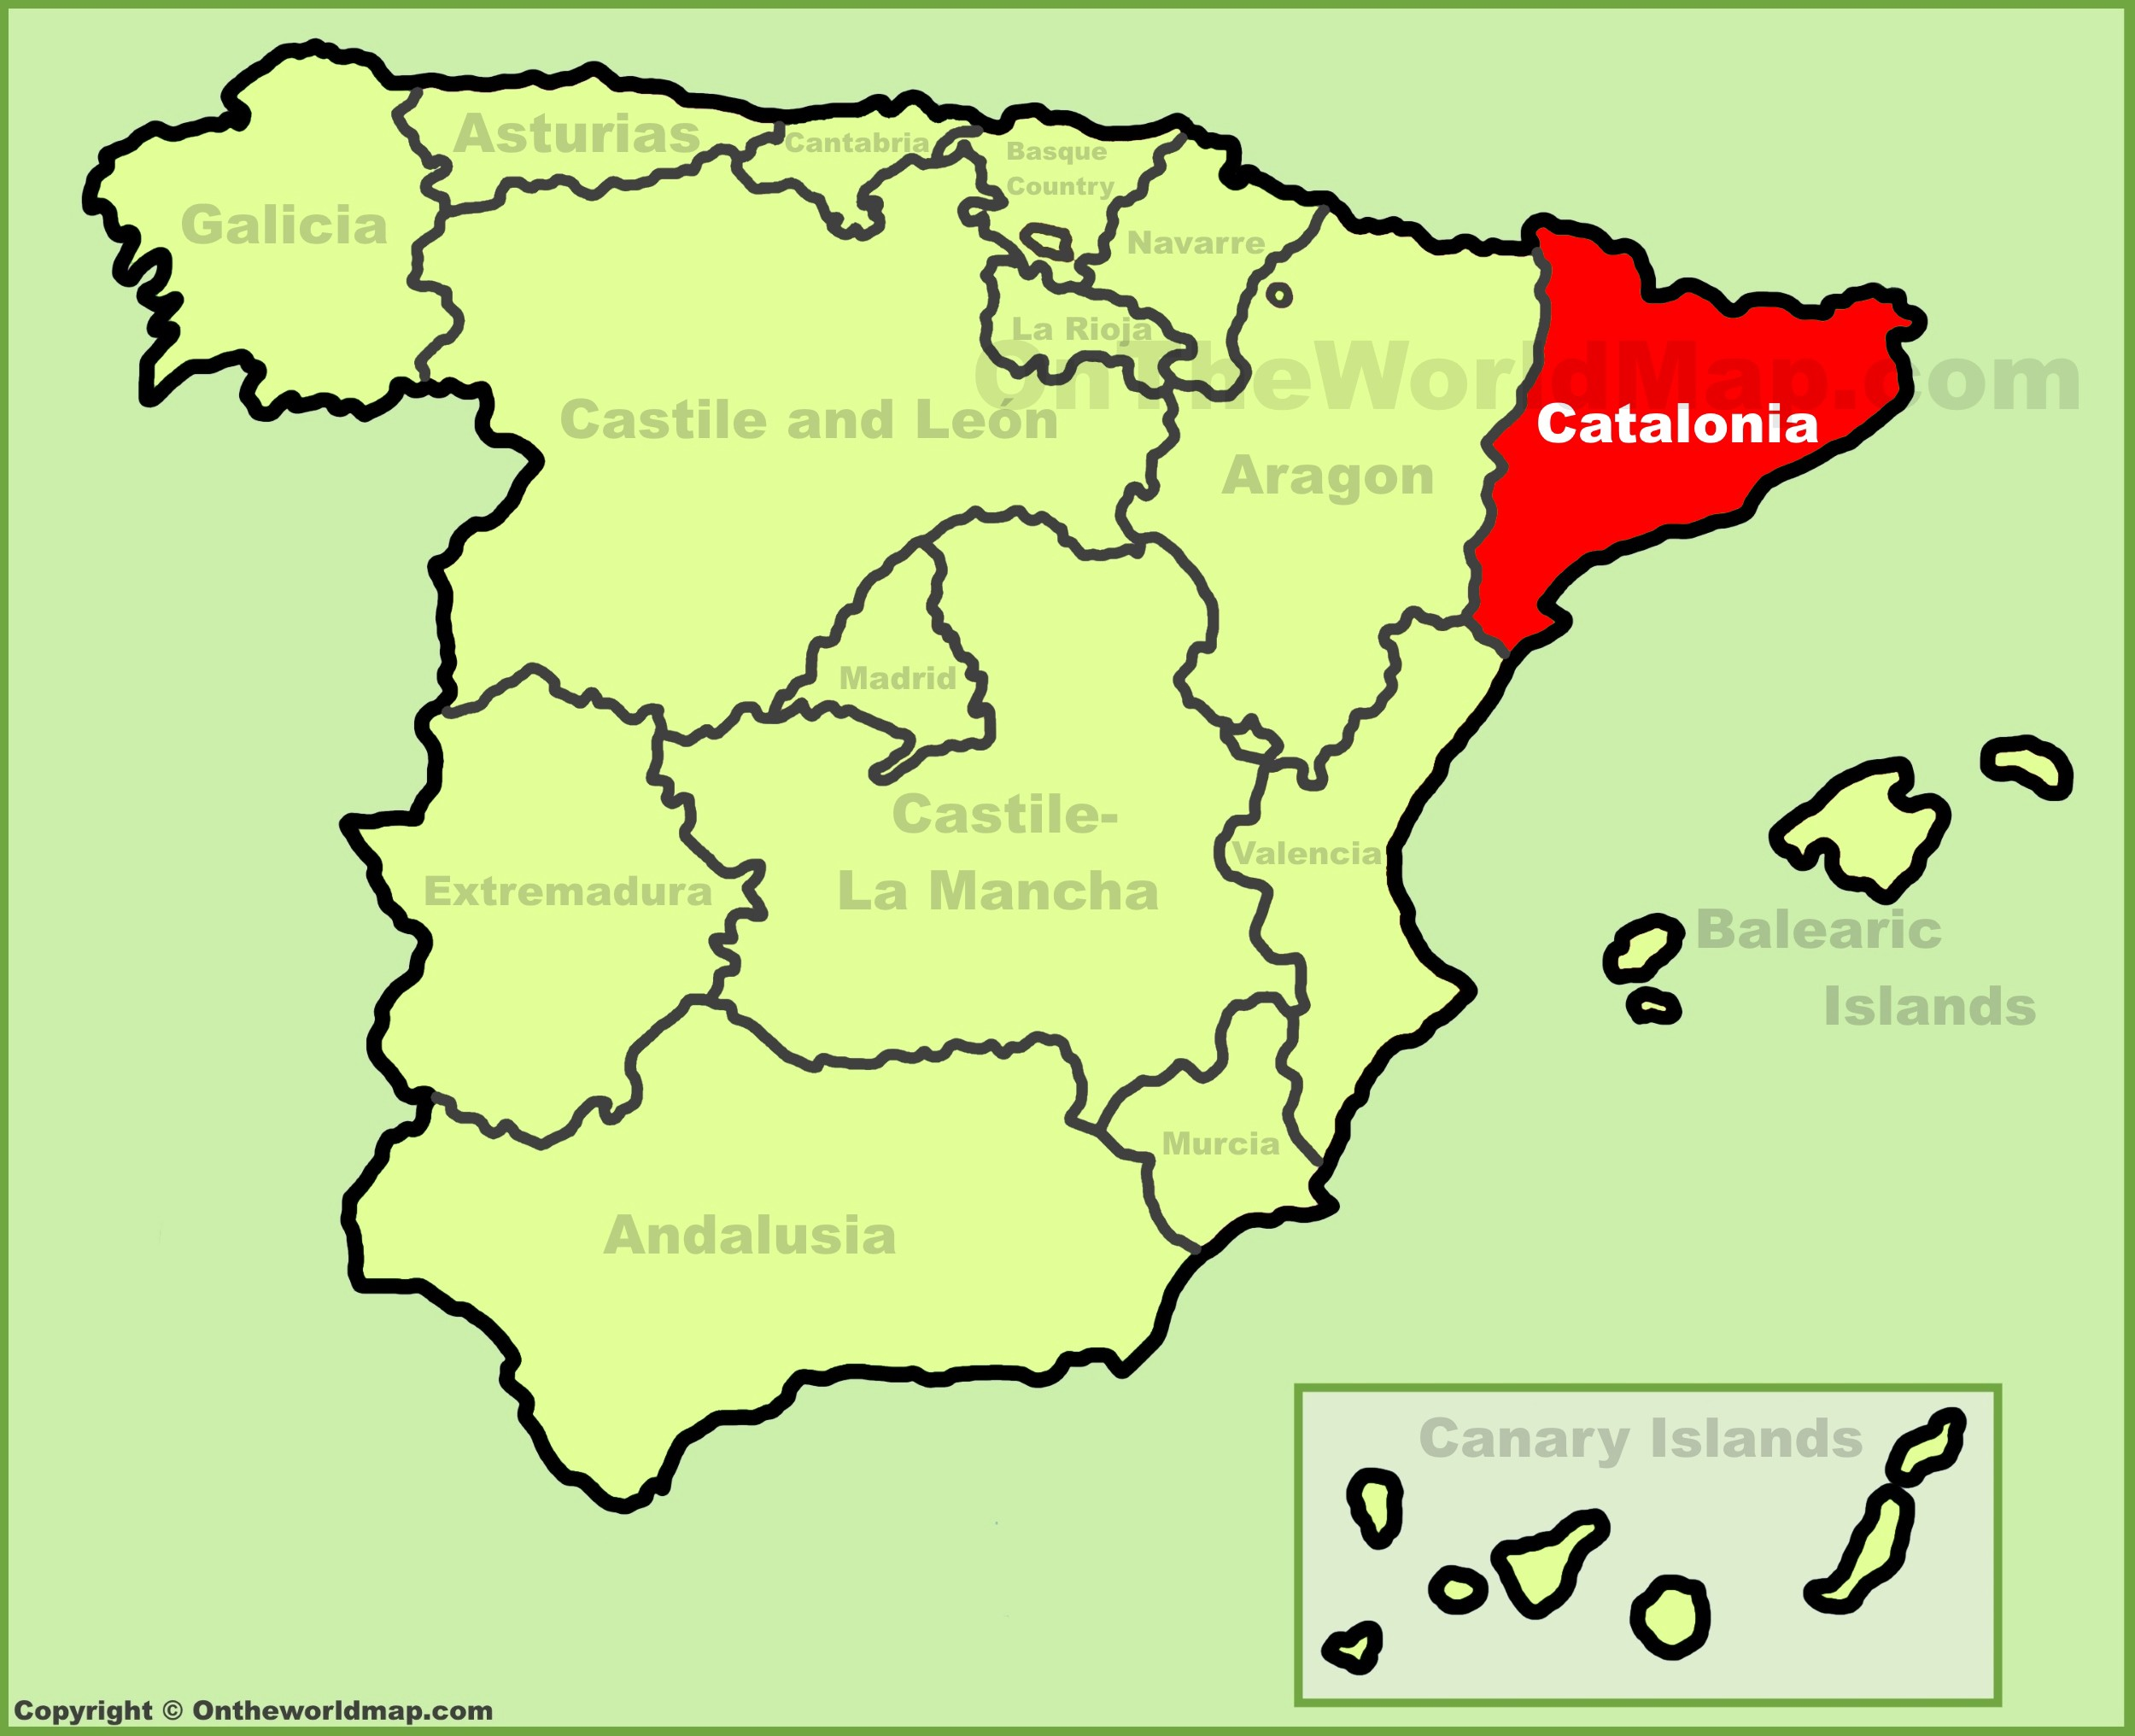 Map Of Spain With Catalonia Highlighted.What Makes A Nation State And Can Catalonia Be One